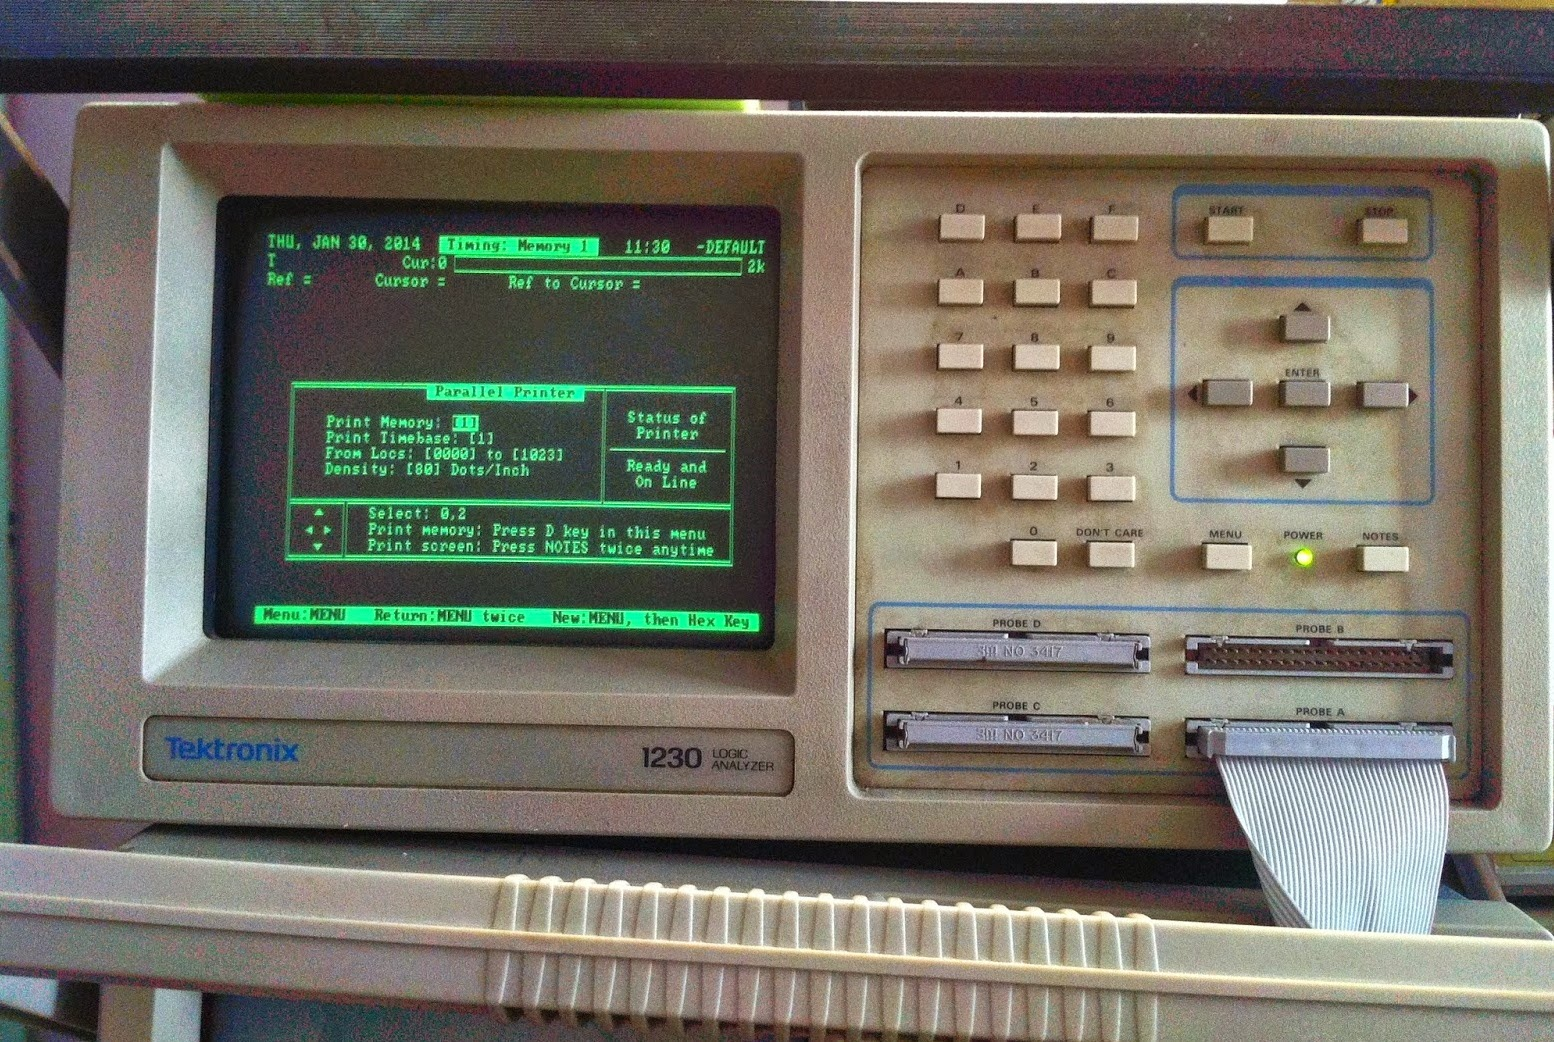 Tektronix 1230 Logic Analyzer Toughdev Block Diagram I Got Mine From Ebay Still In Good Condition After All These Years The Crt Is Working Well And Bright With No Burned Marks That Are Typical Of Old